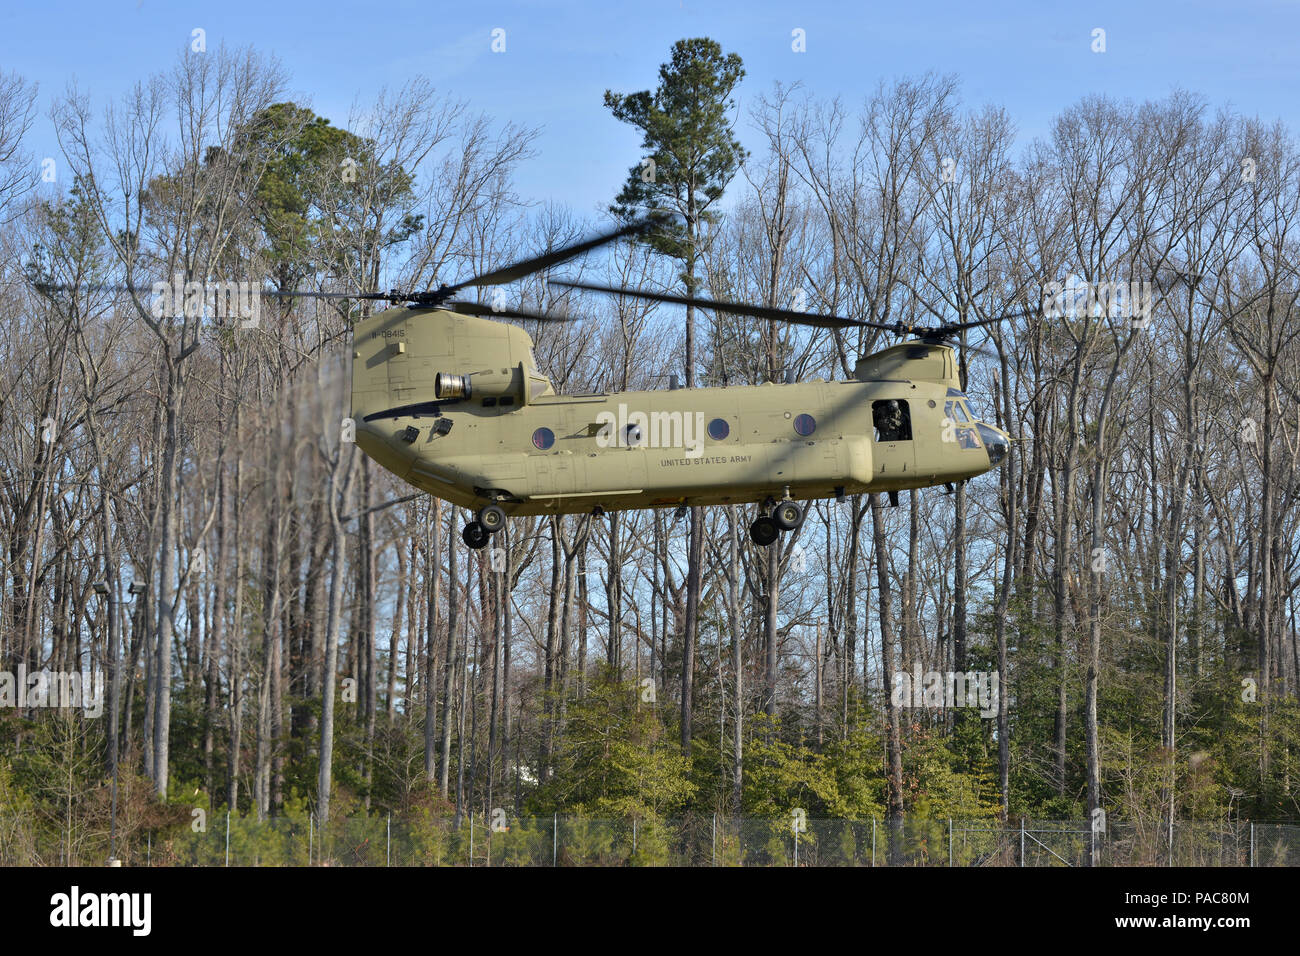 A CH-47 Chinook helicopter lands in support of a casualty evacuation exercise at Fort Eustis, Va., March 3, 2016. The 159th Aviation Regiment, 5th Battalion Chinook crew supported the 558th Transportation Company by providing evacuation transport. (U.S. Air Force photo by Staff Sgt. Natasha Stannard) - Stock Image